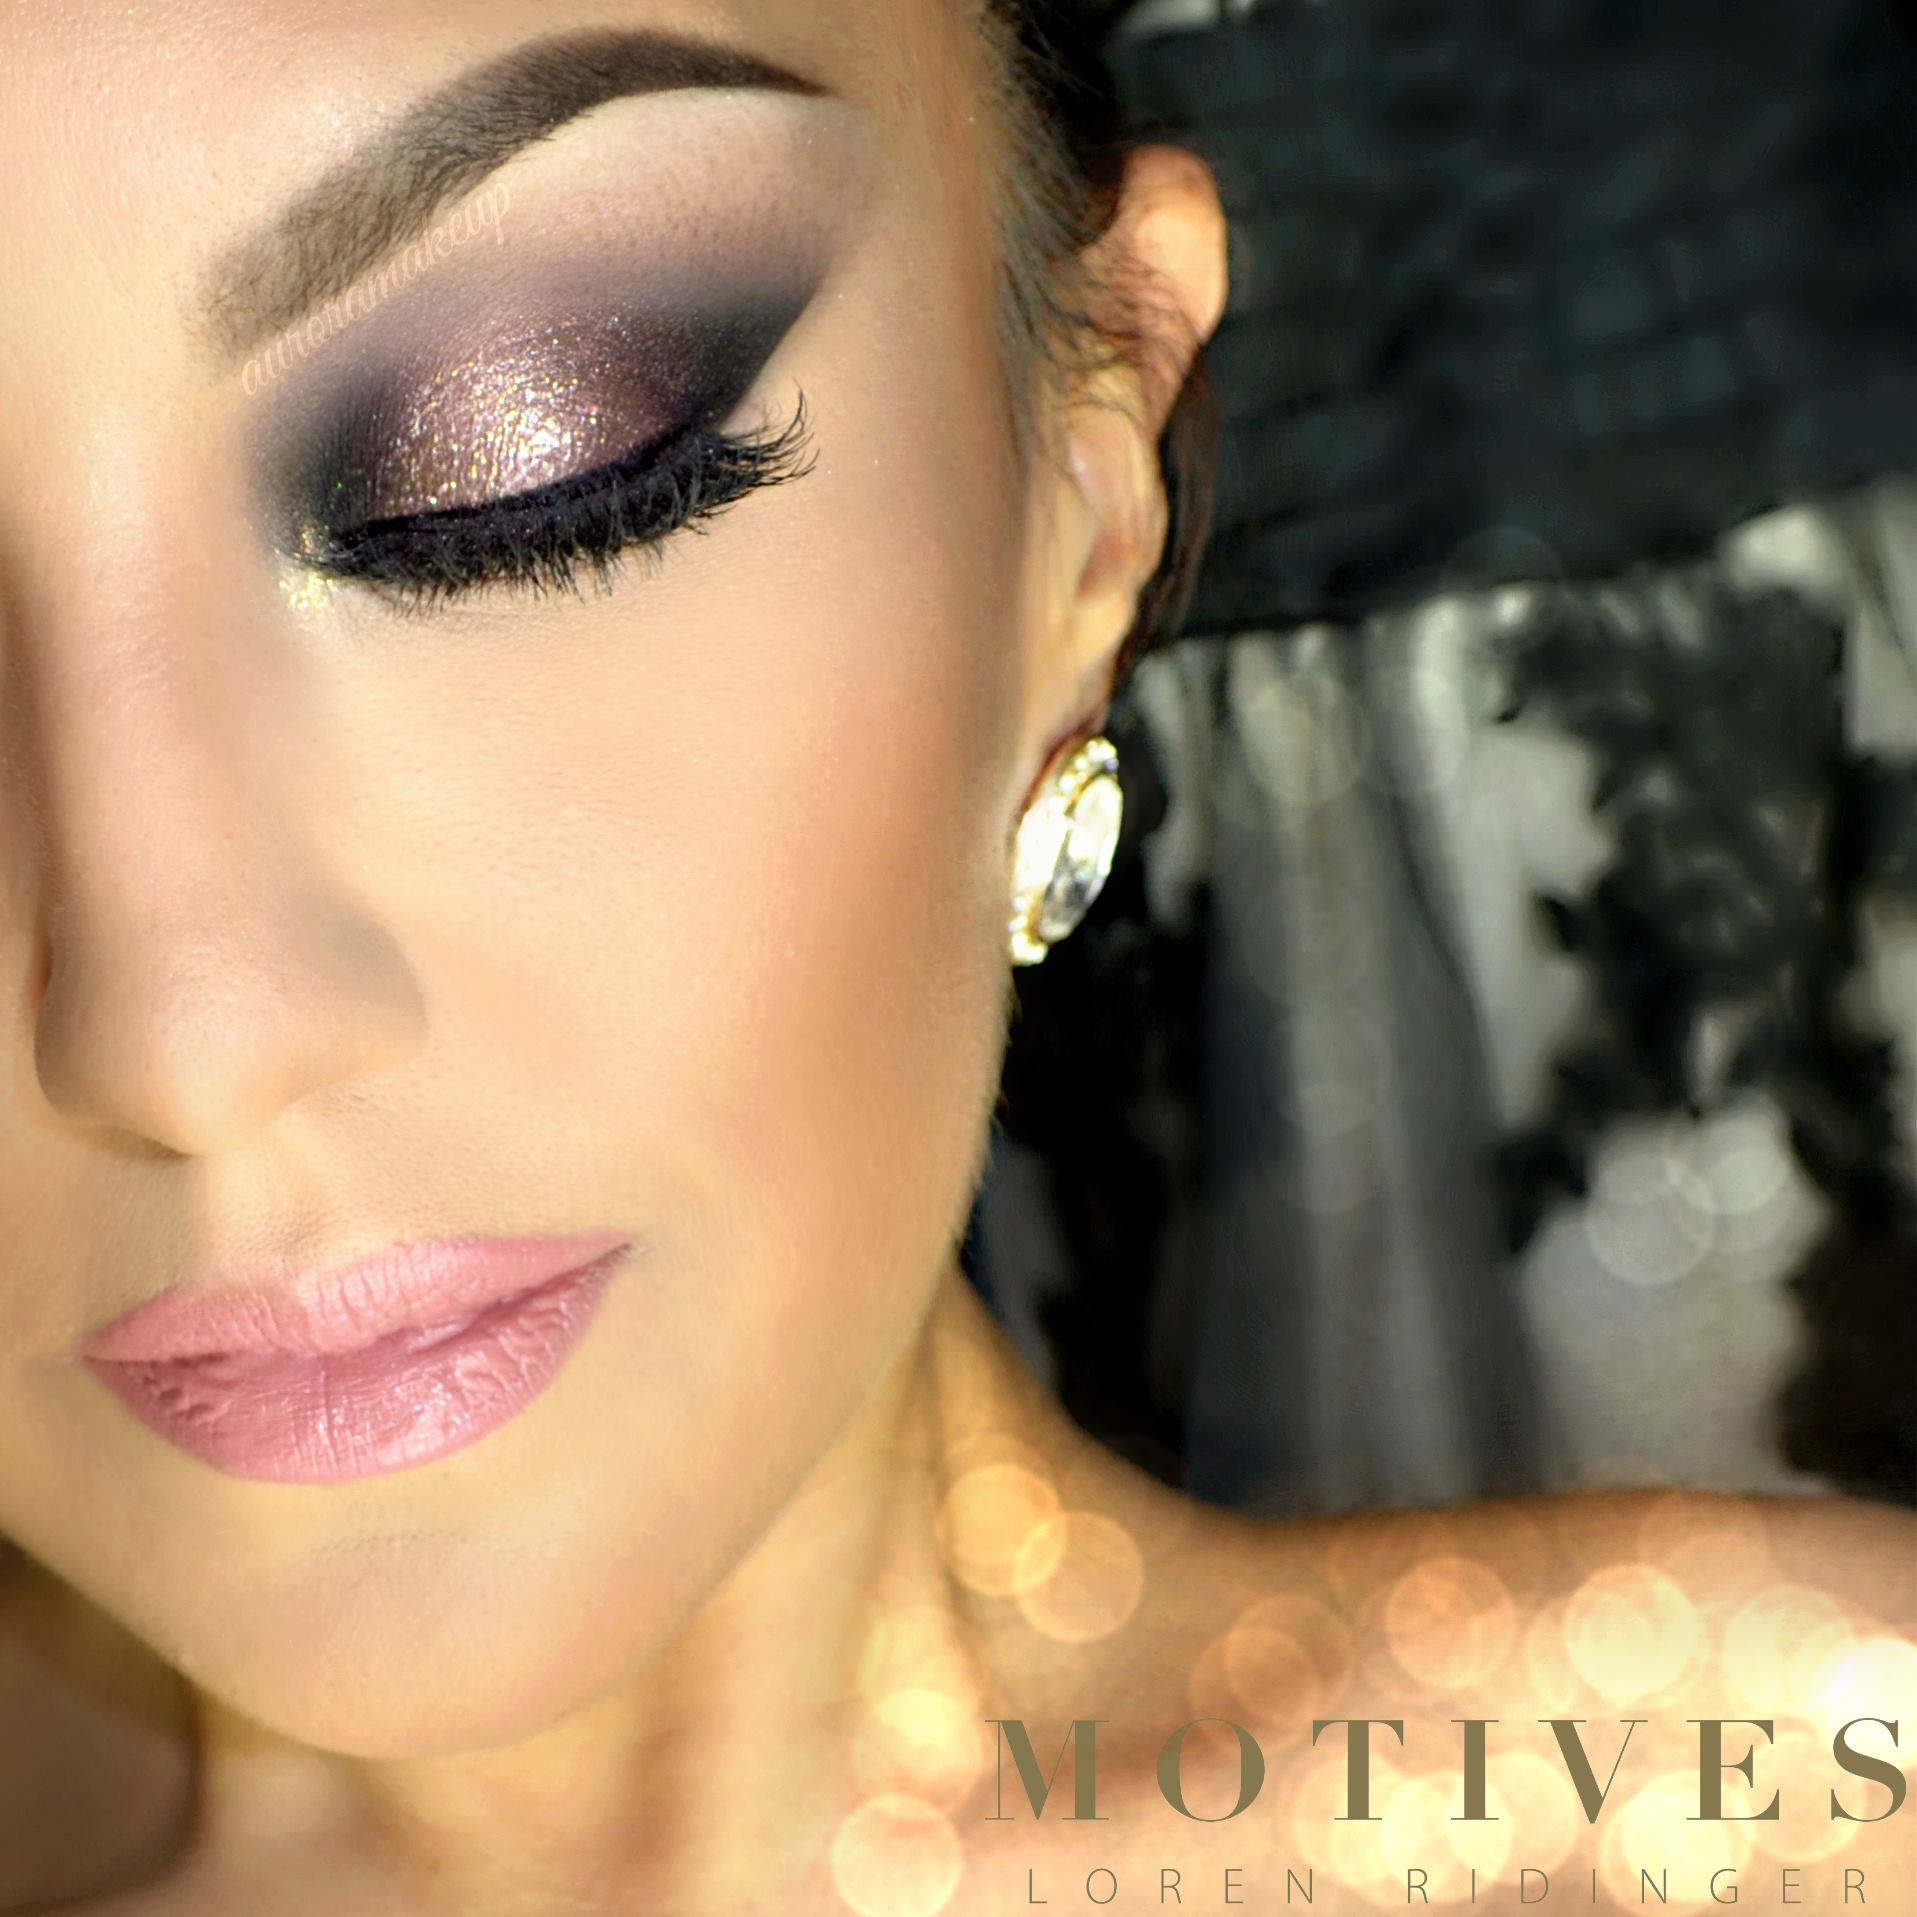 motives-eyes82.jpg